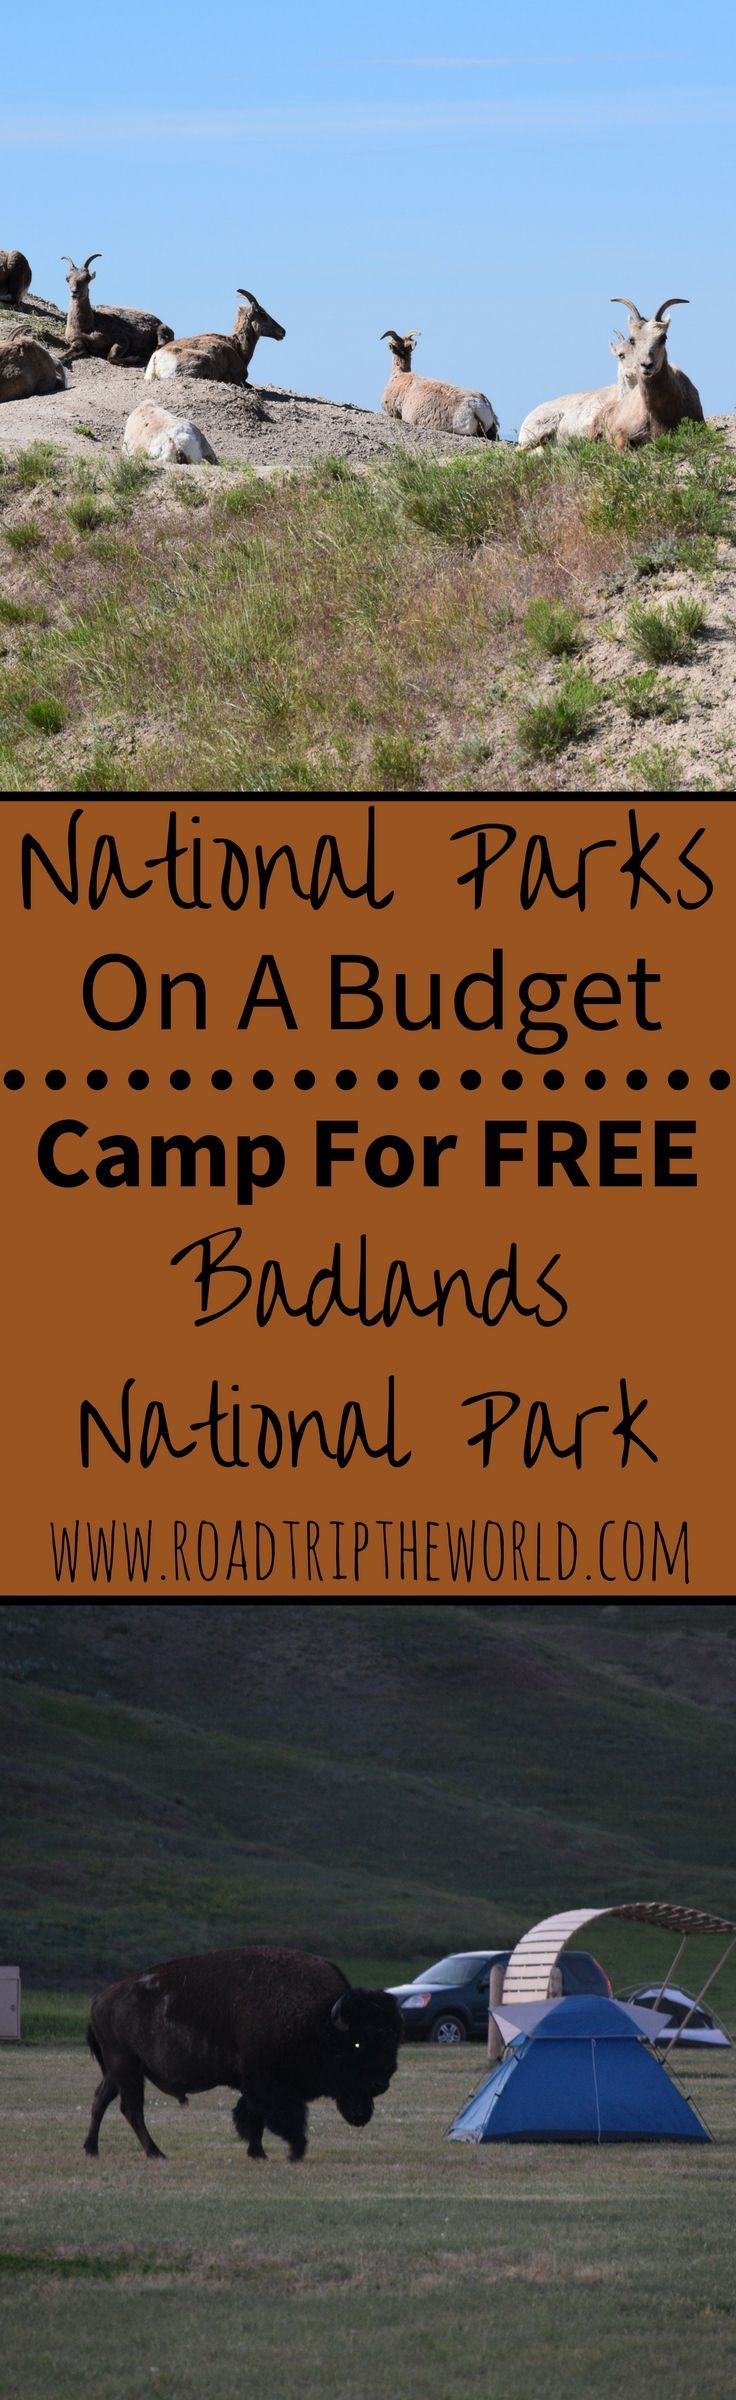 Looking to visit Badlands National Park on a Budget? Check out Sage Creek Campground to Camp for FREE!